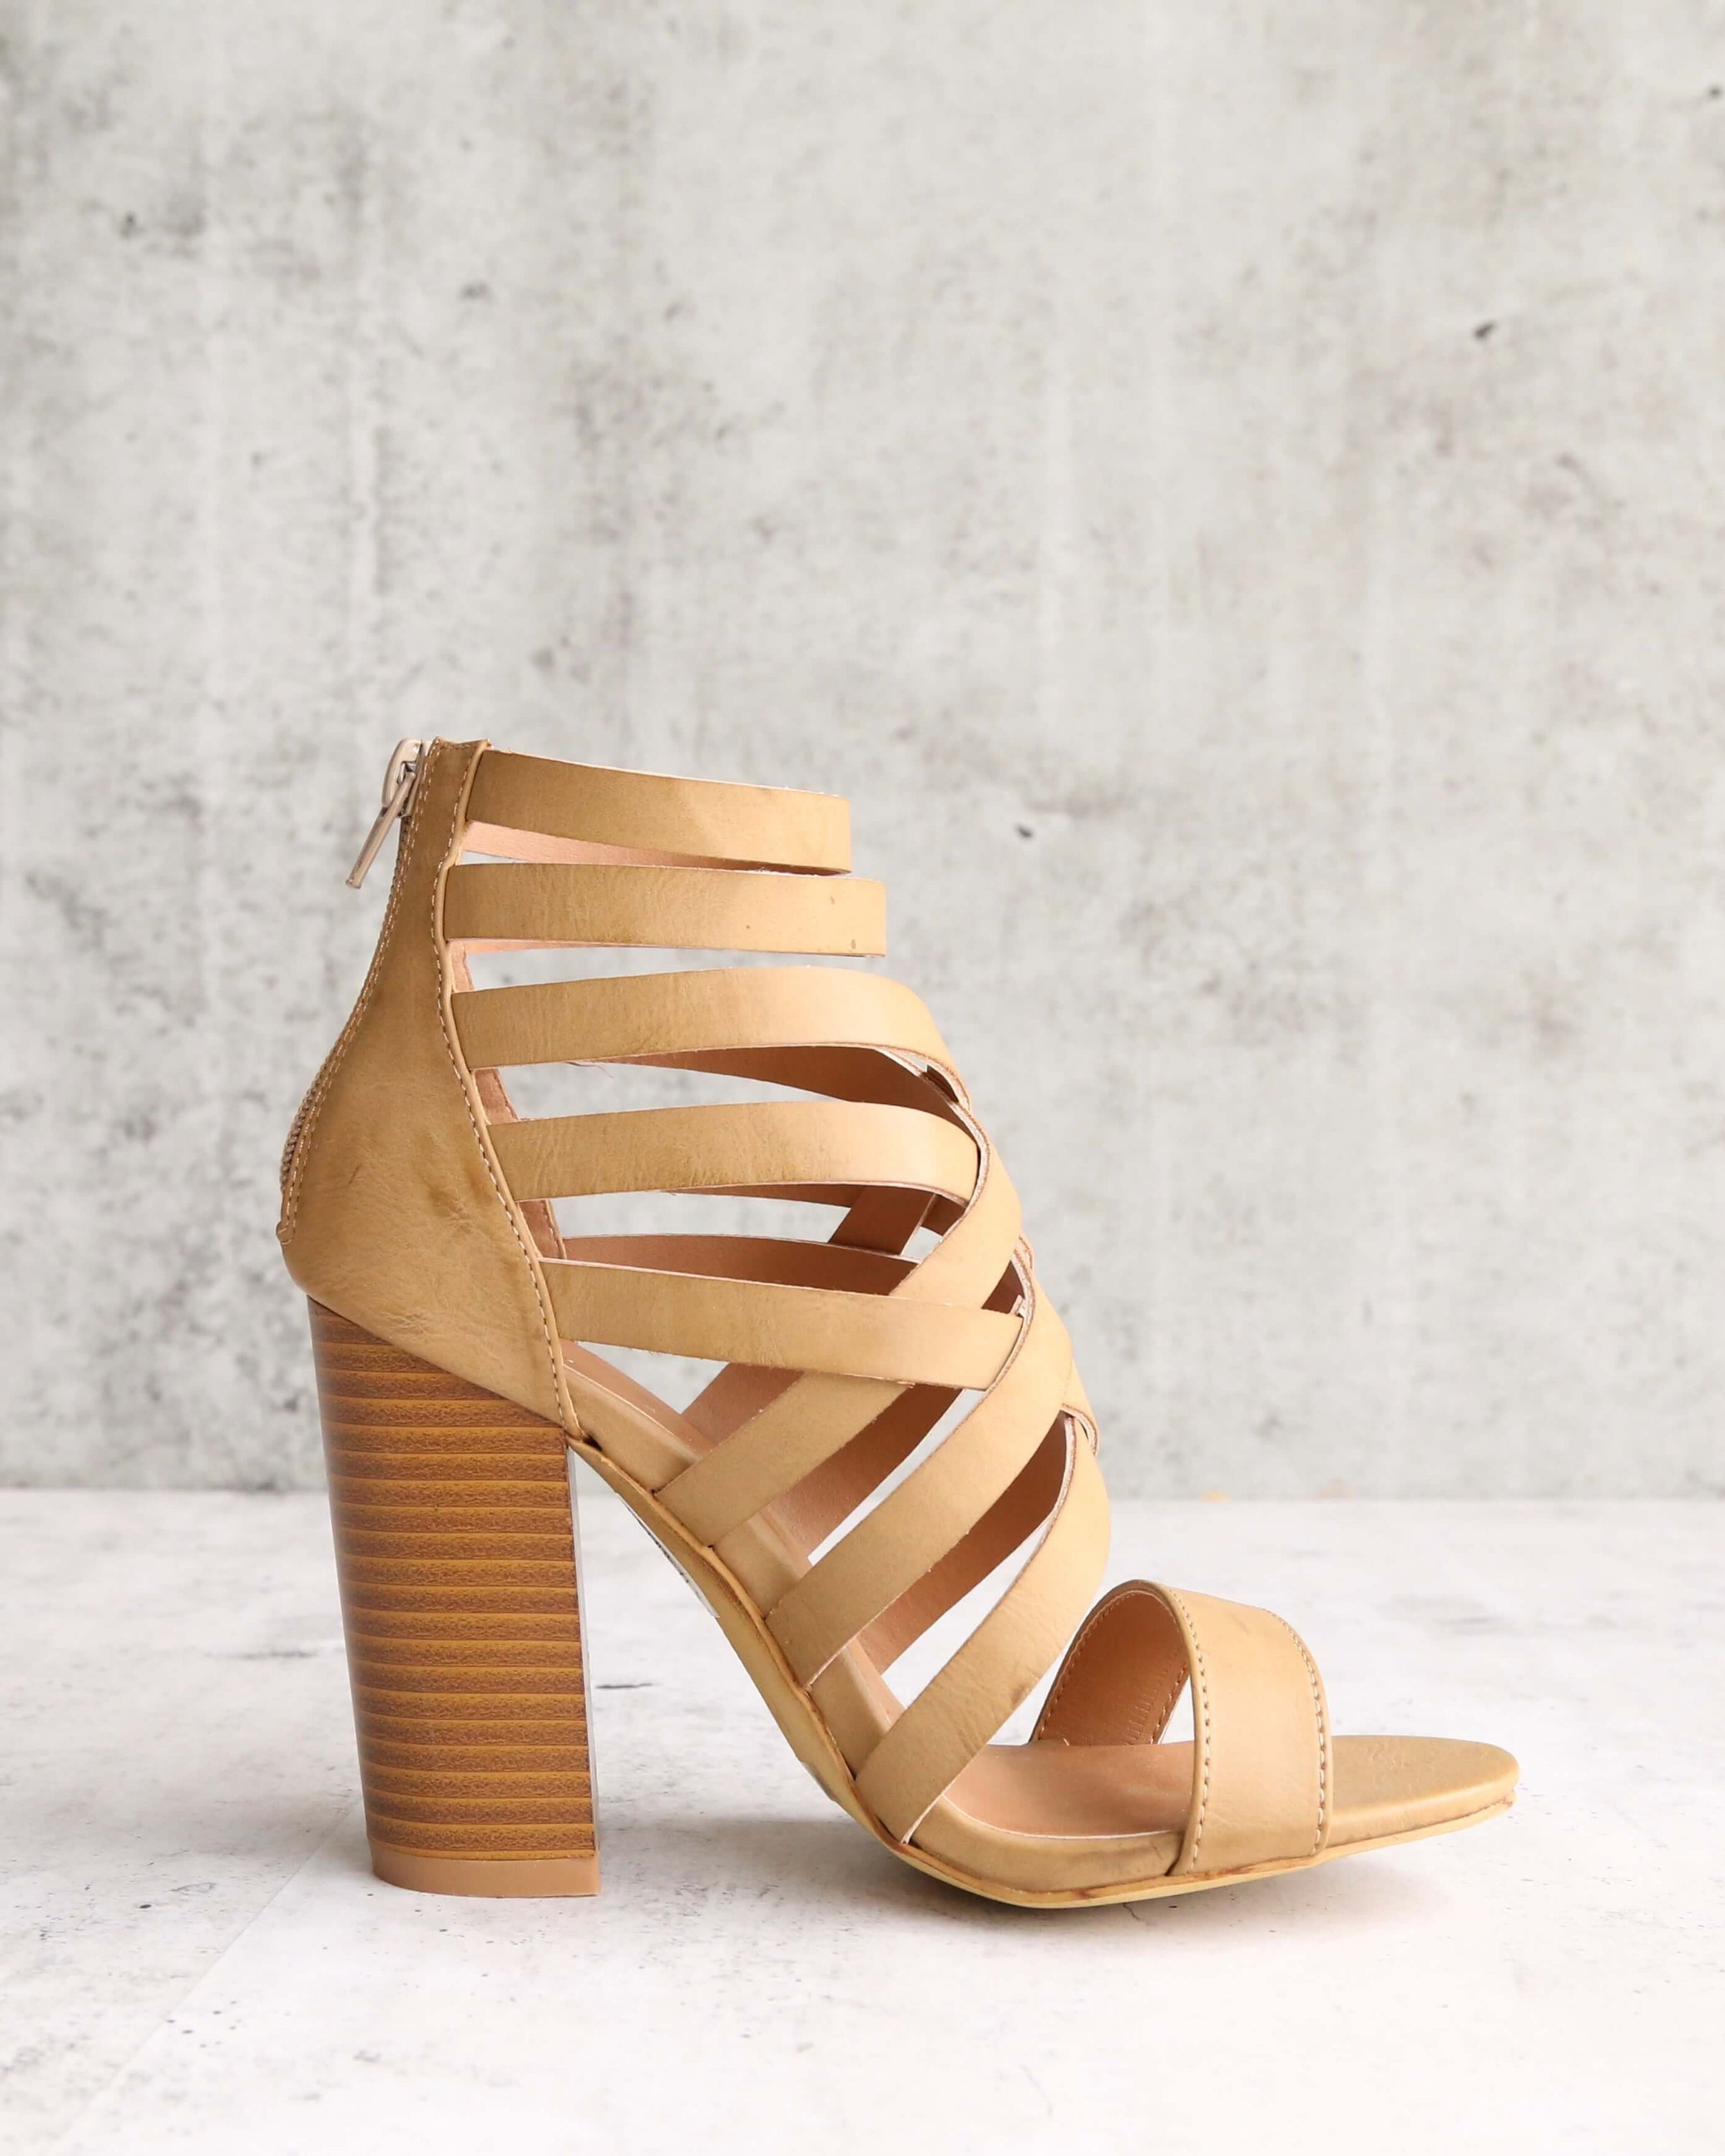 outlet online finest selection brand new final sale - strappy stacked heel sandals - khaki